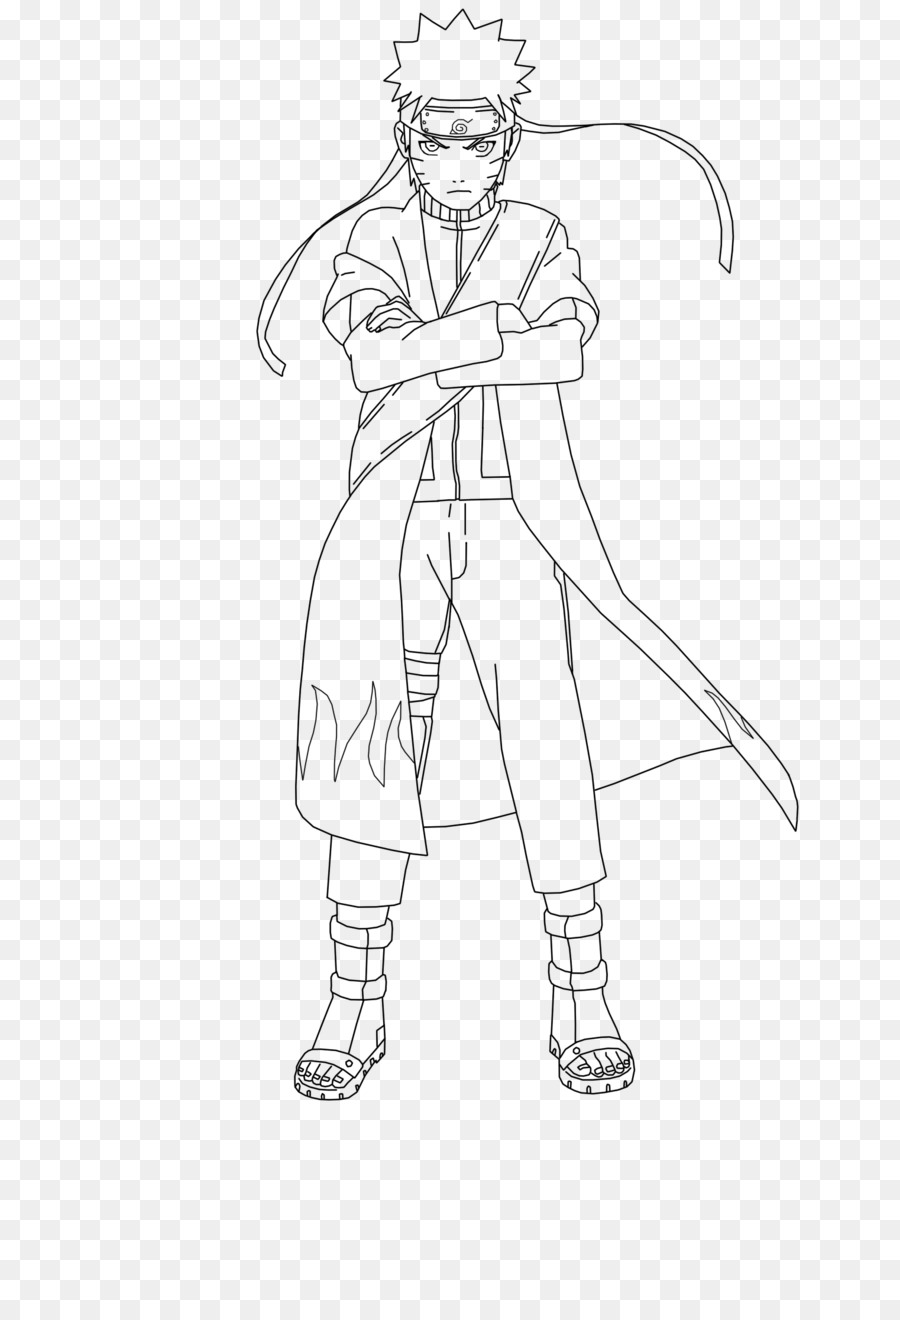 Naruto uzumaki black and white pain line art clothing png